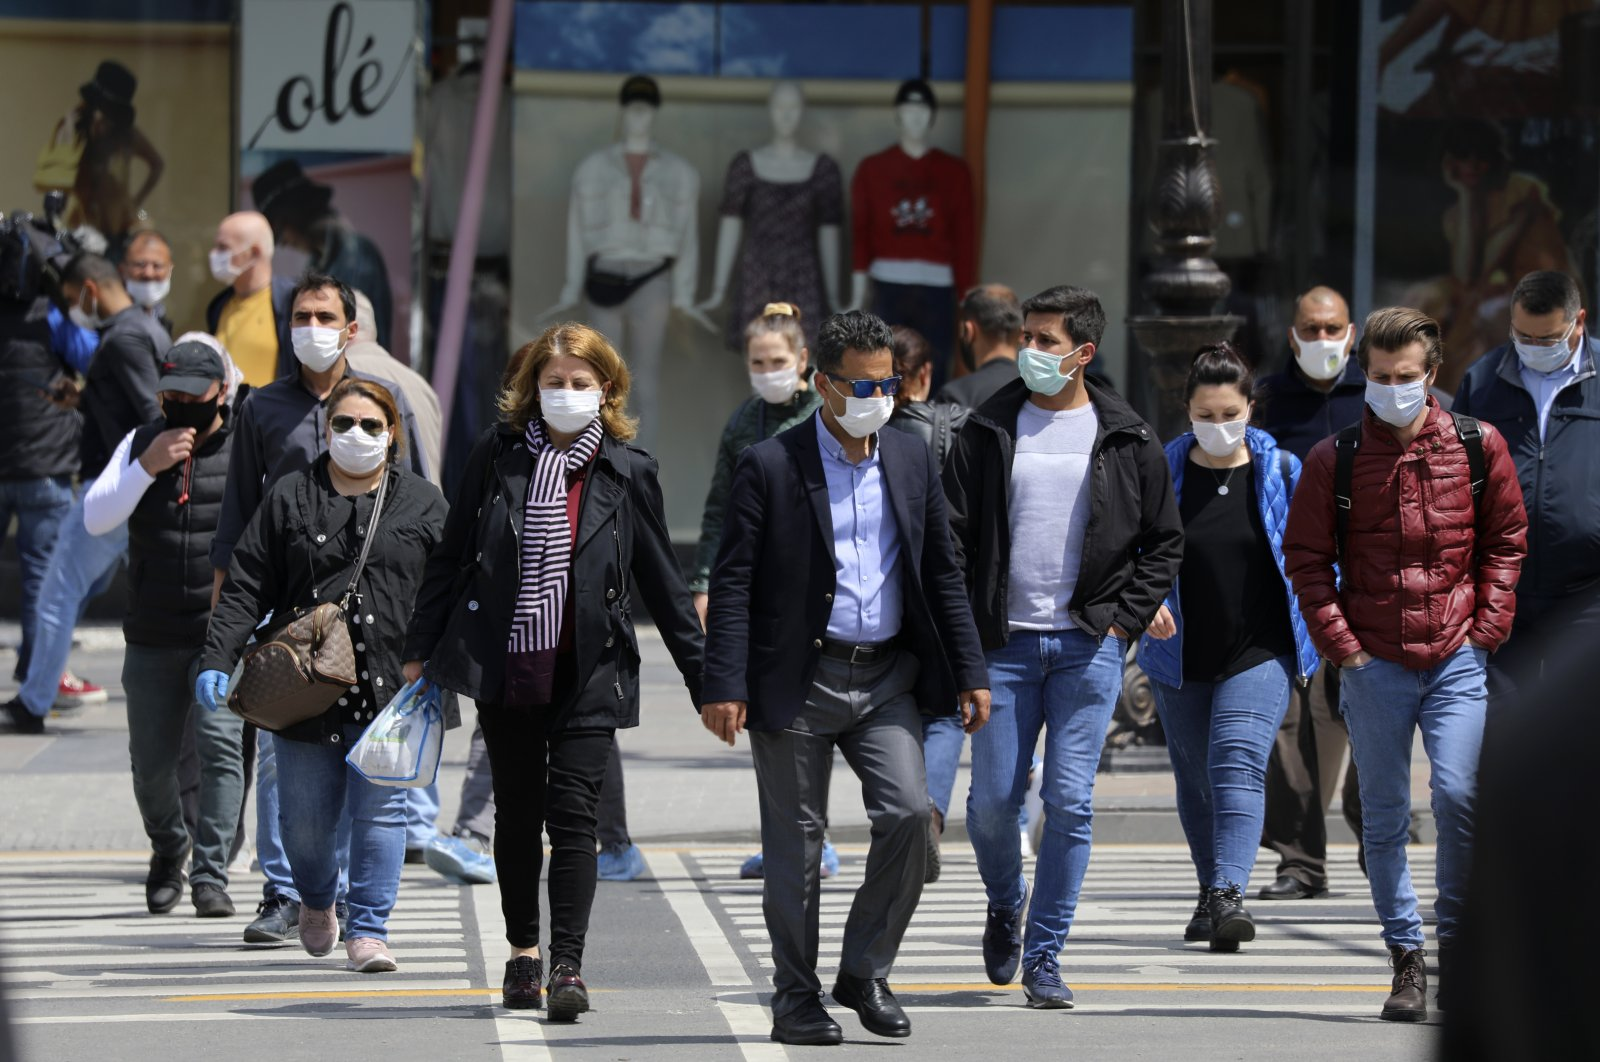 People wearing face masks for protection against the coronavirus, walk in a busy street, in Ankara, Turkey, Tuesday, May 5, 2020. (AP Photo)